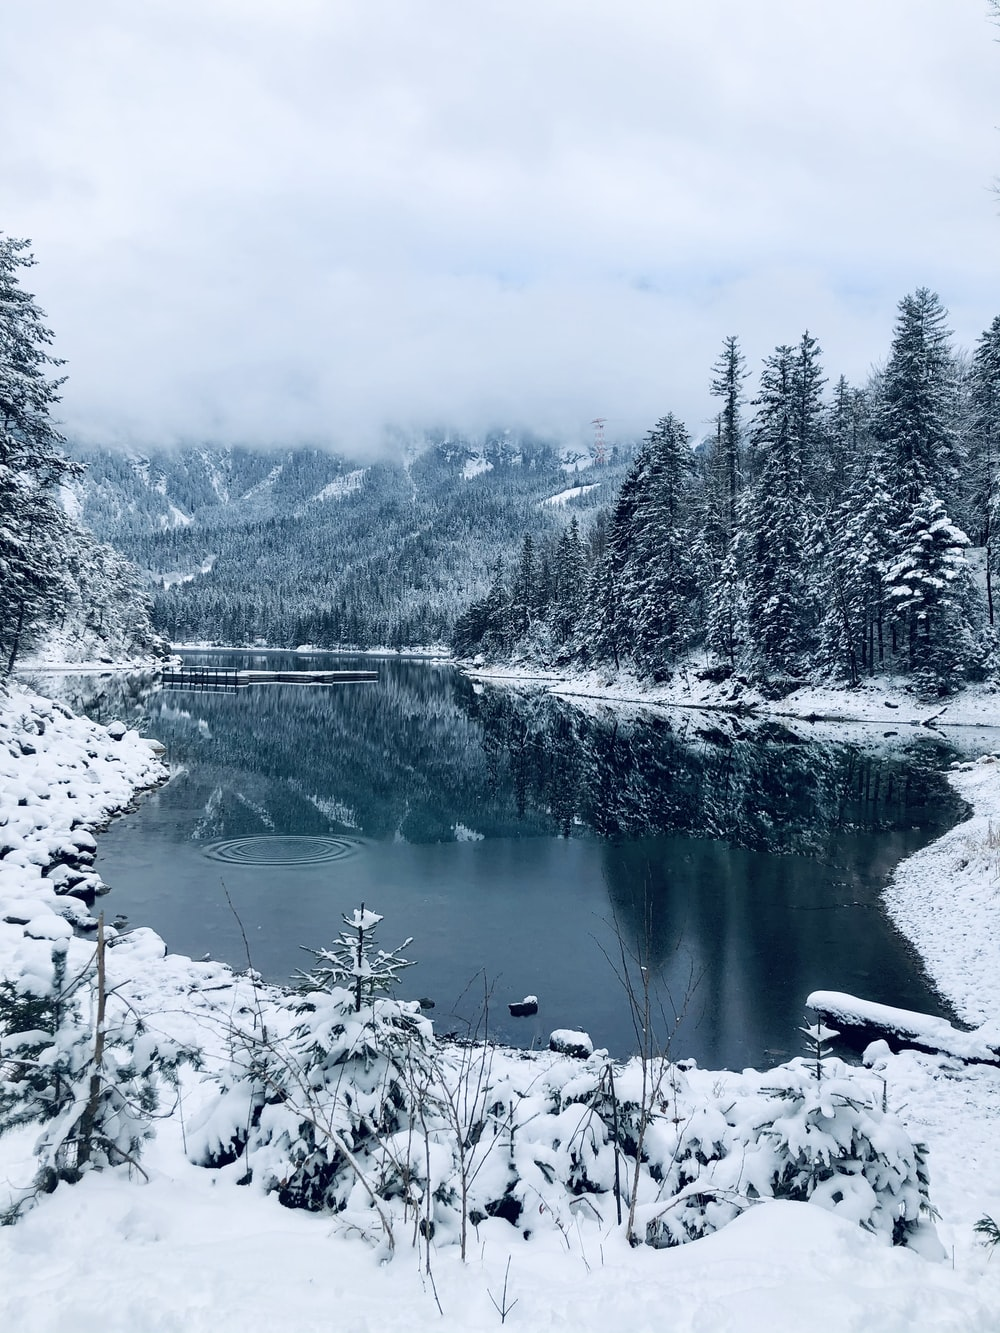 snow covered trees and lake